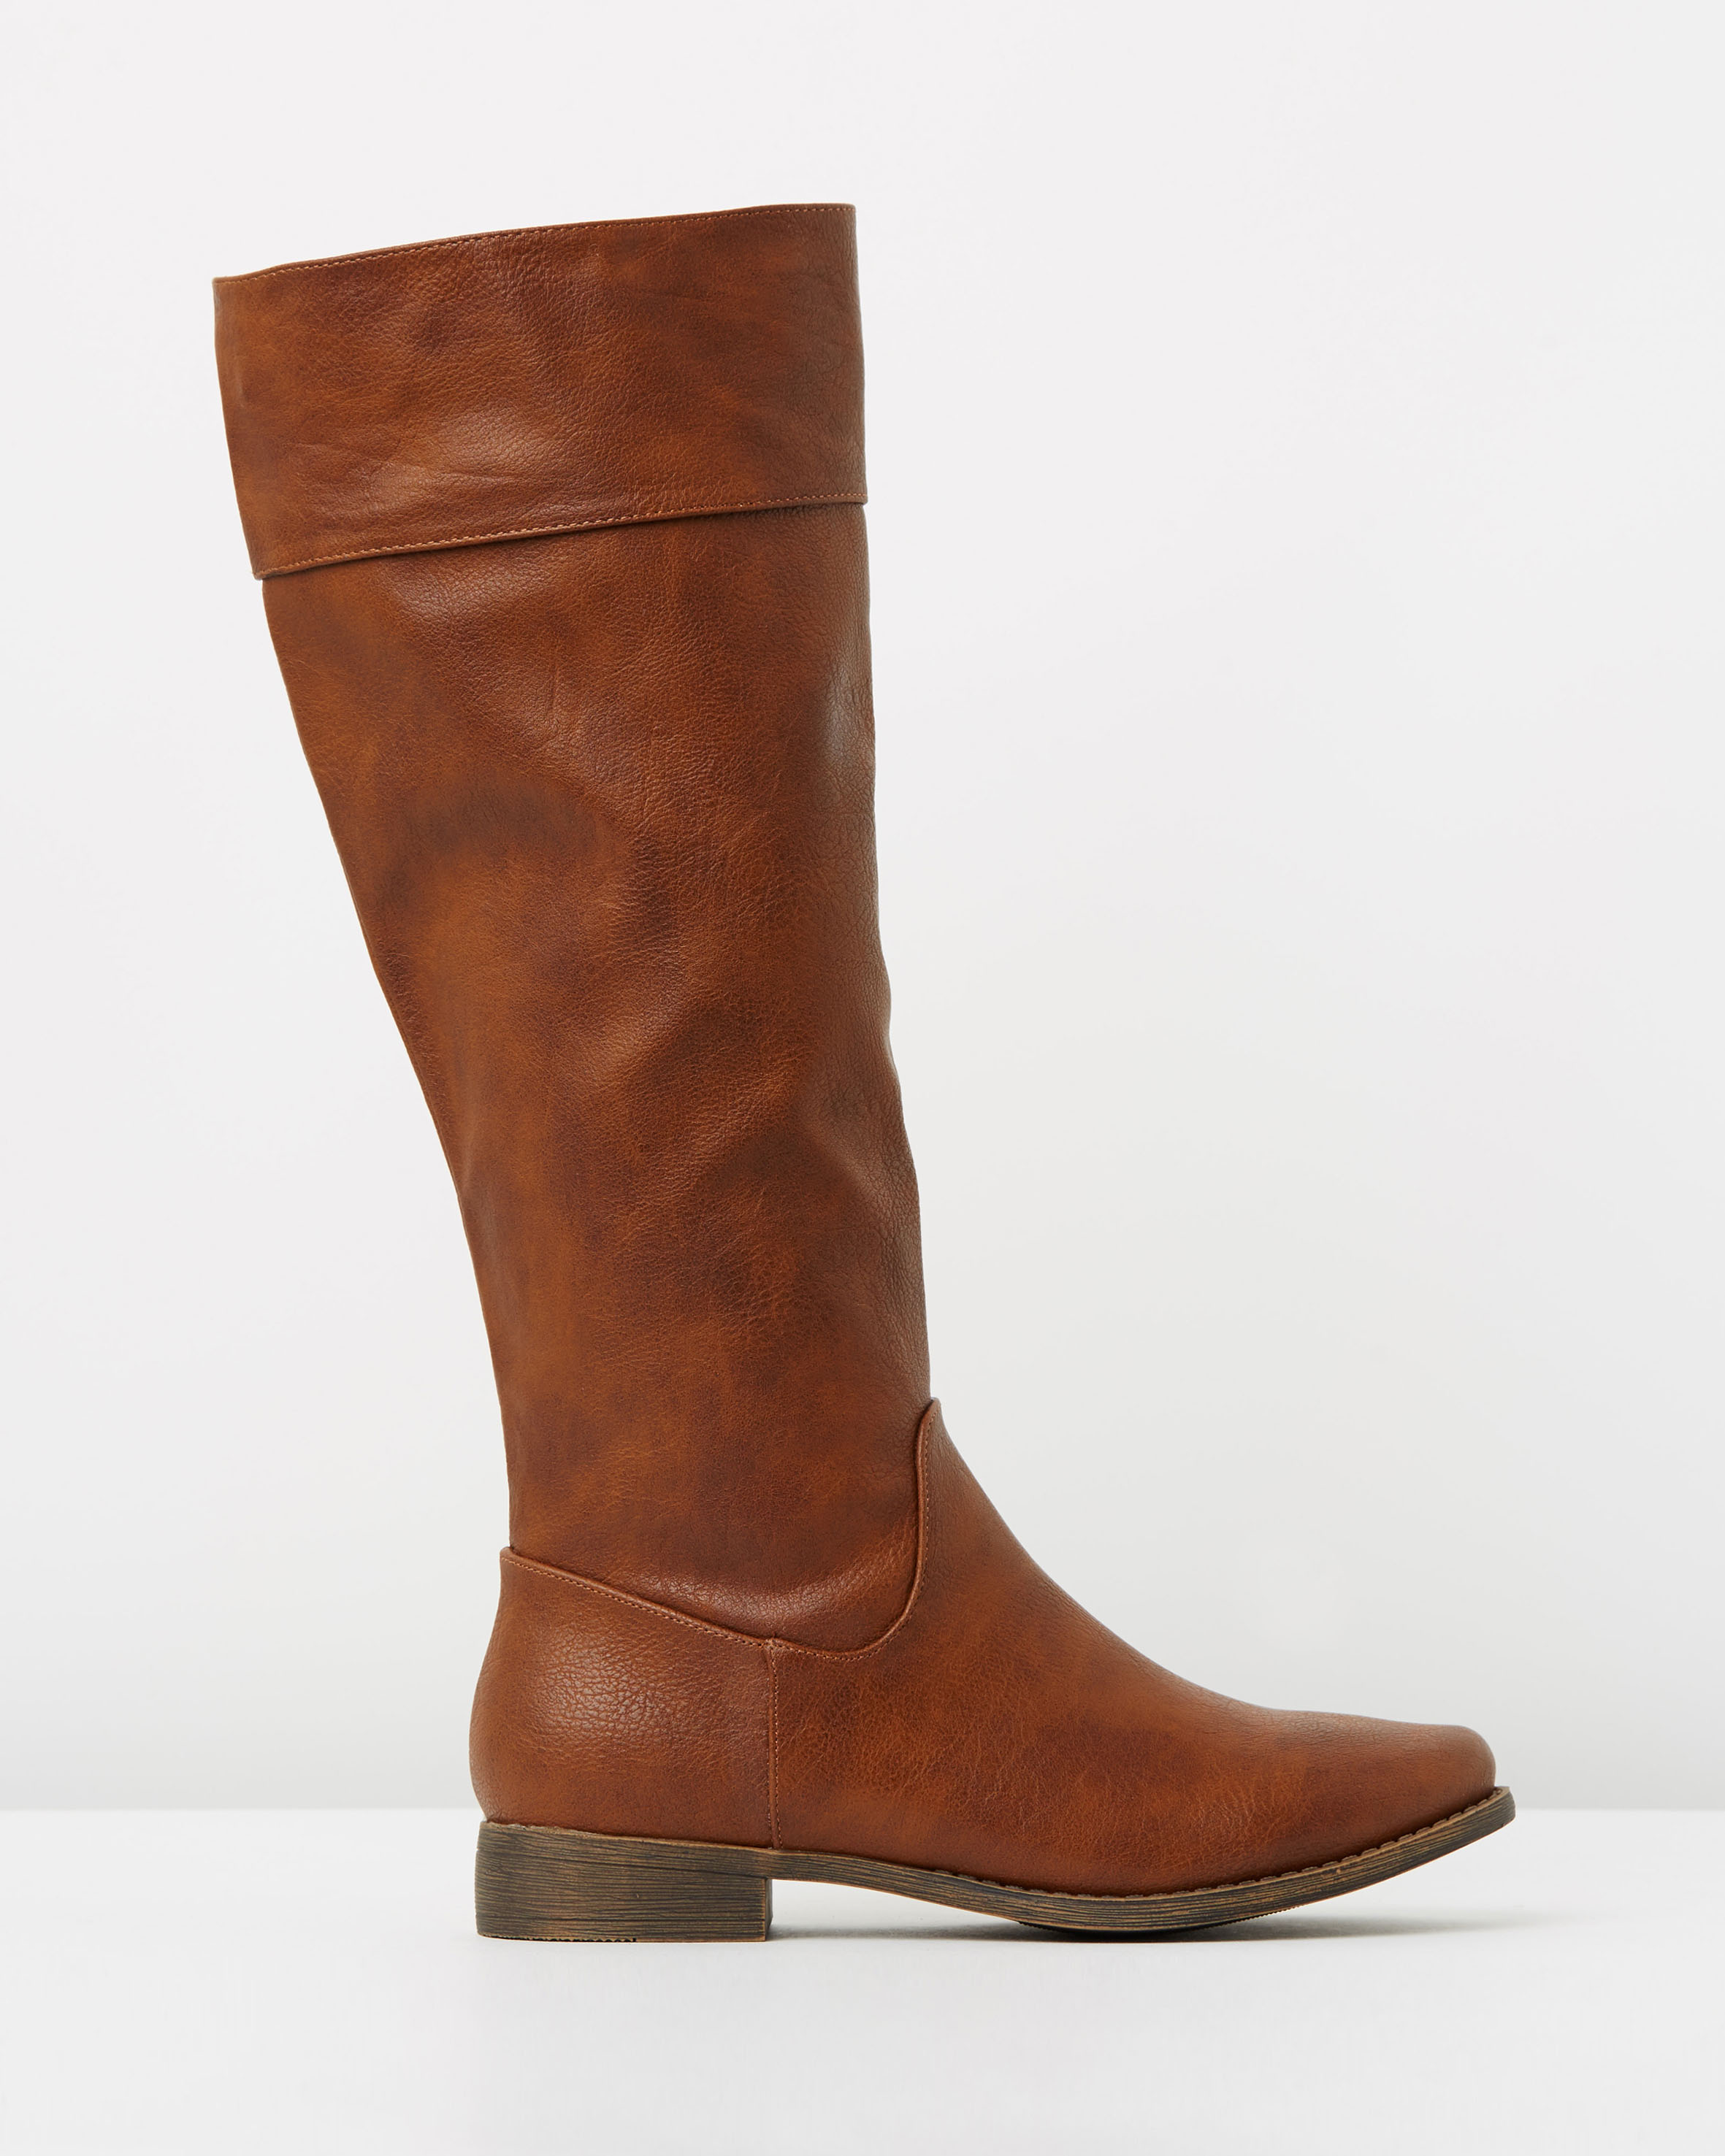 Long Brown Boots For Women - Boot Hto